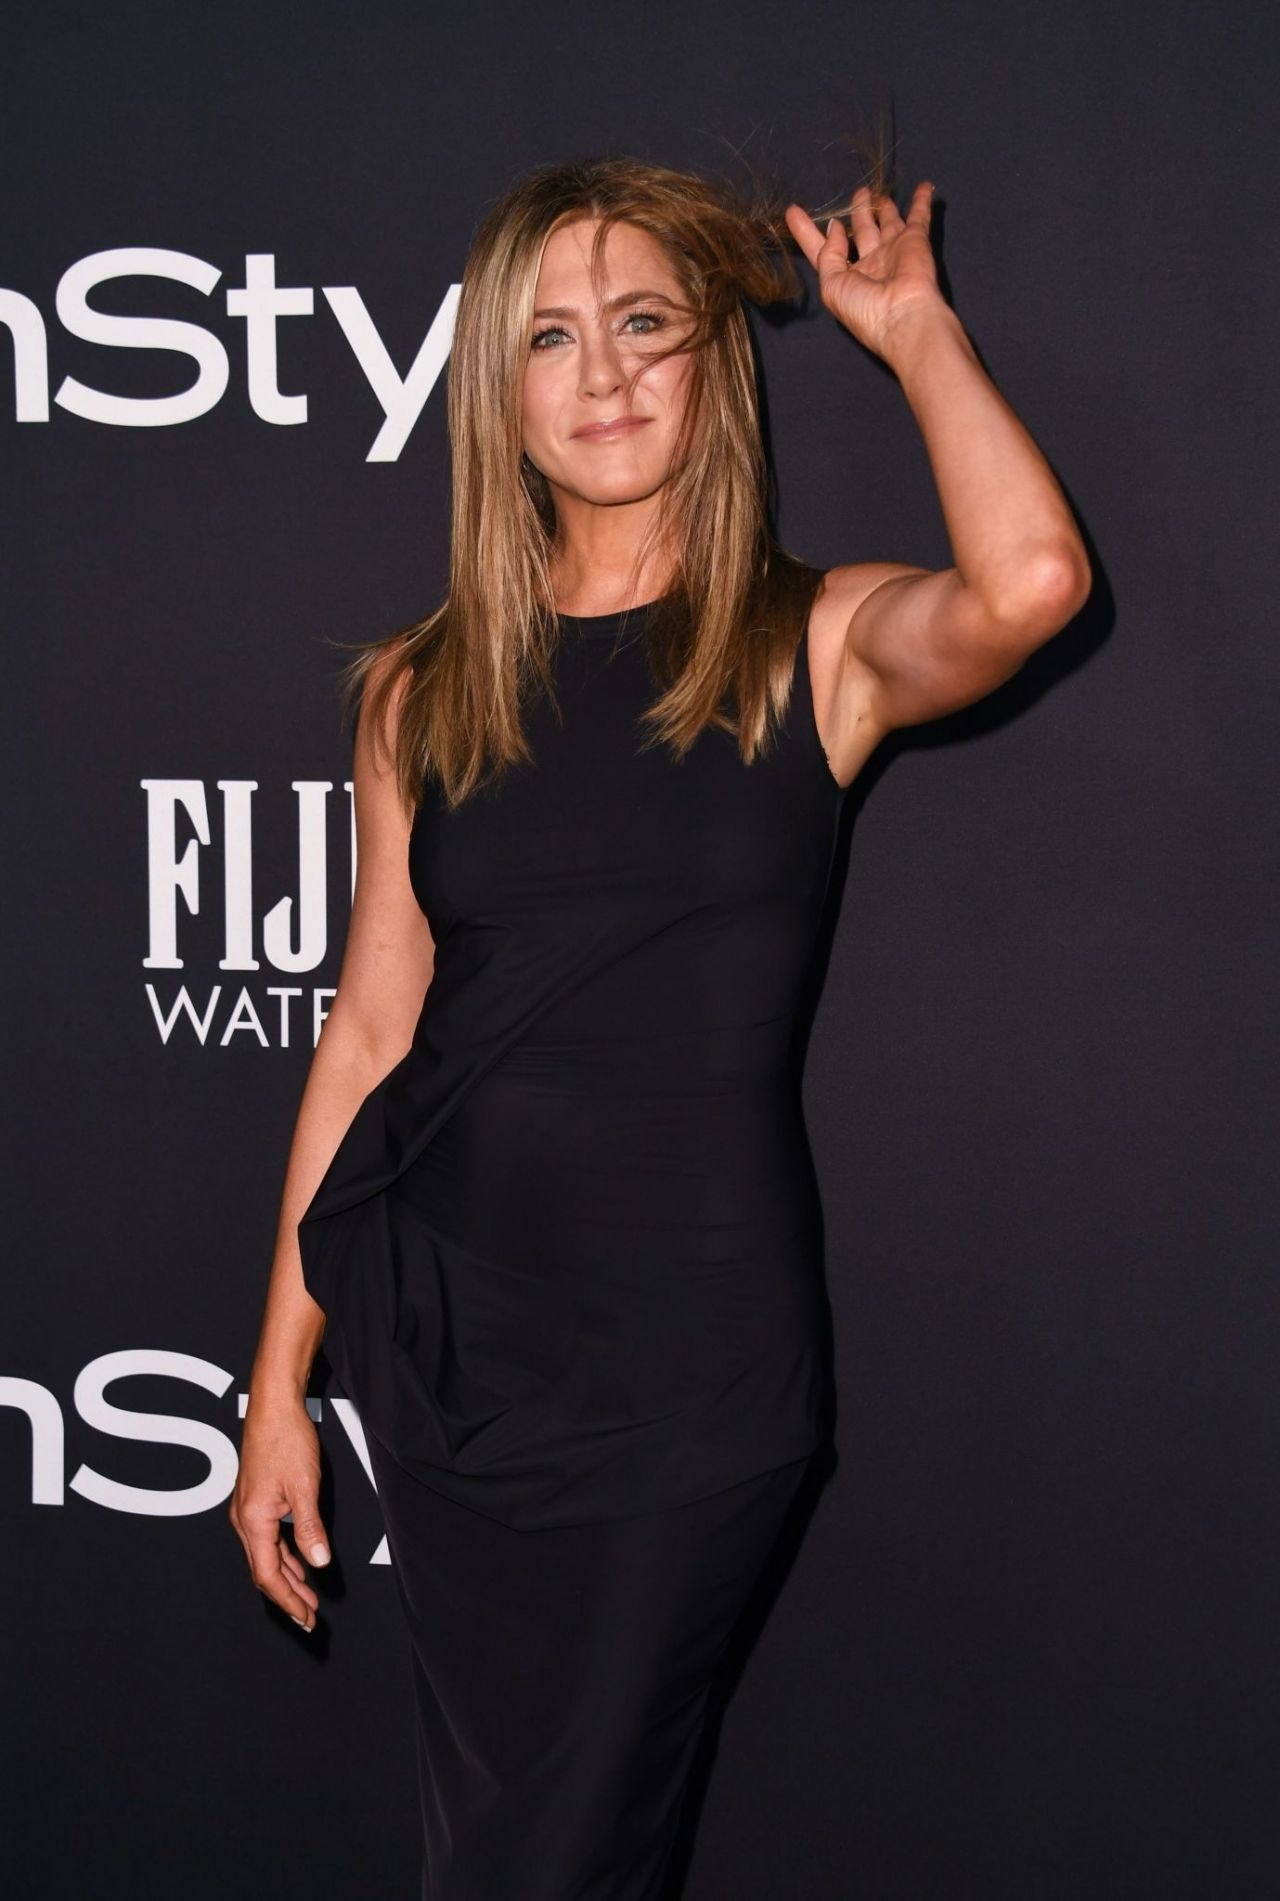 https://celebmafia.com/wp-content/uploads/2018/10/jennifer-aniston-2018-instyle-awards-3.jpg